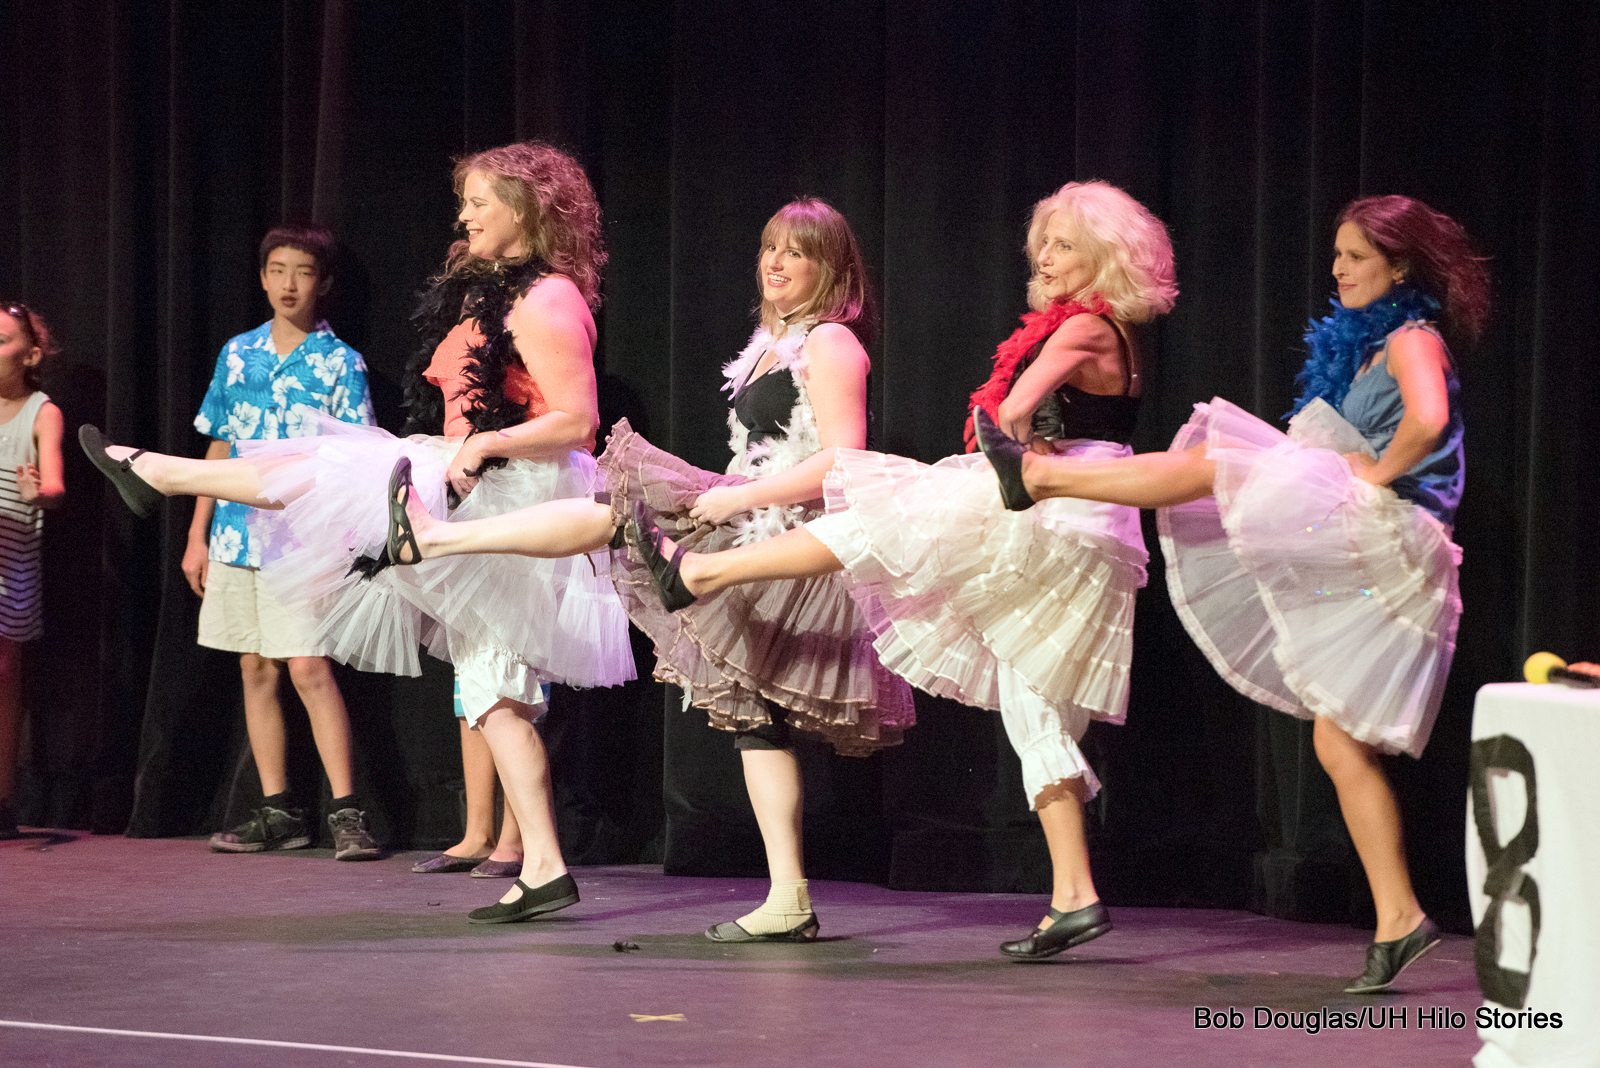 """Four women in white skirts doing a """"can-can"""" type dance, in line with left legs kicking up."""